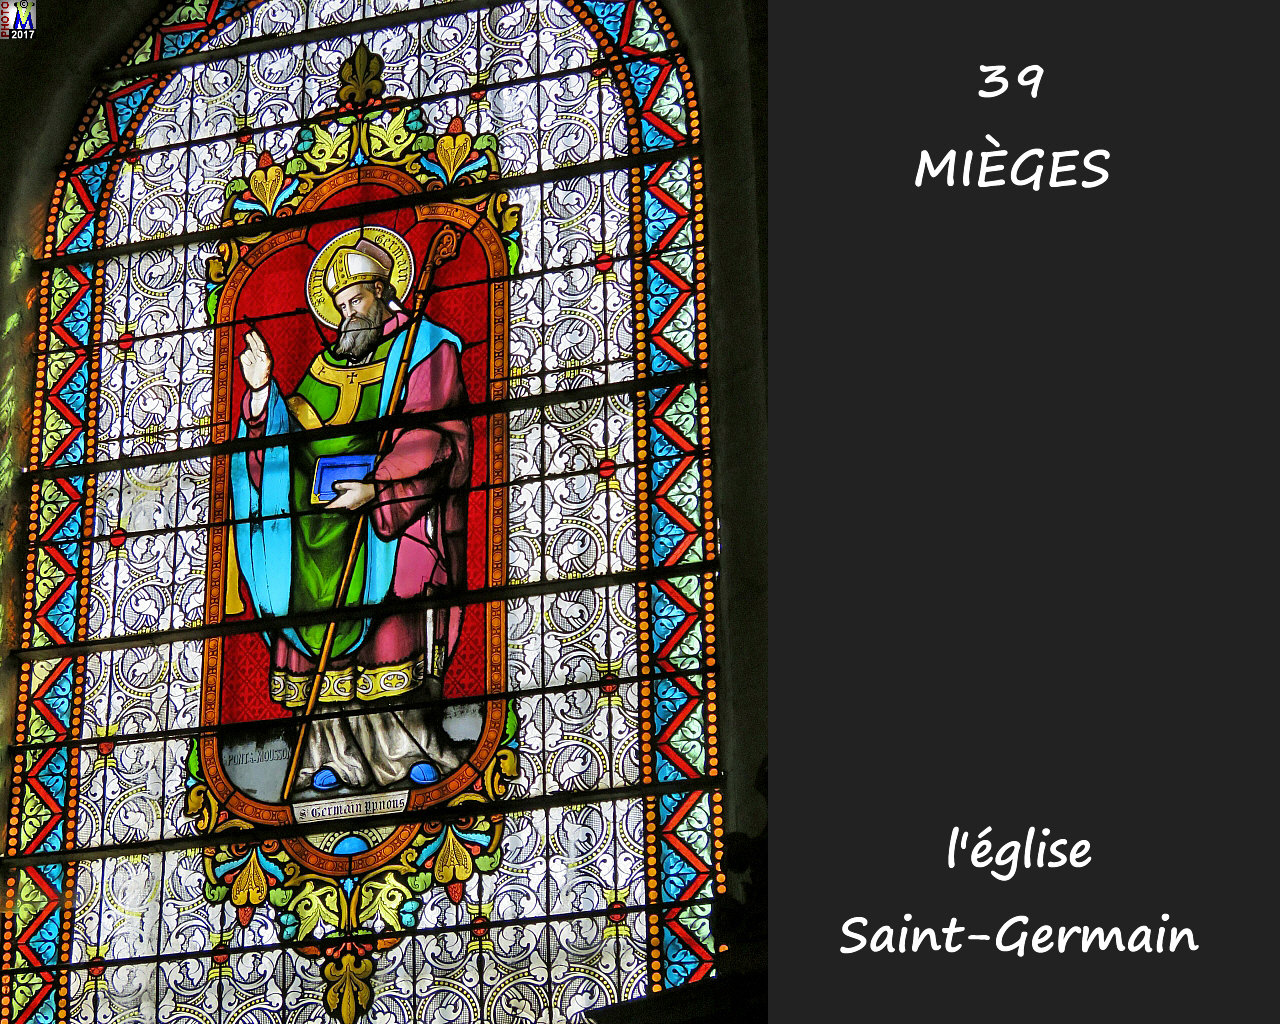 39MIEGES_eglise_240.jpg